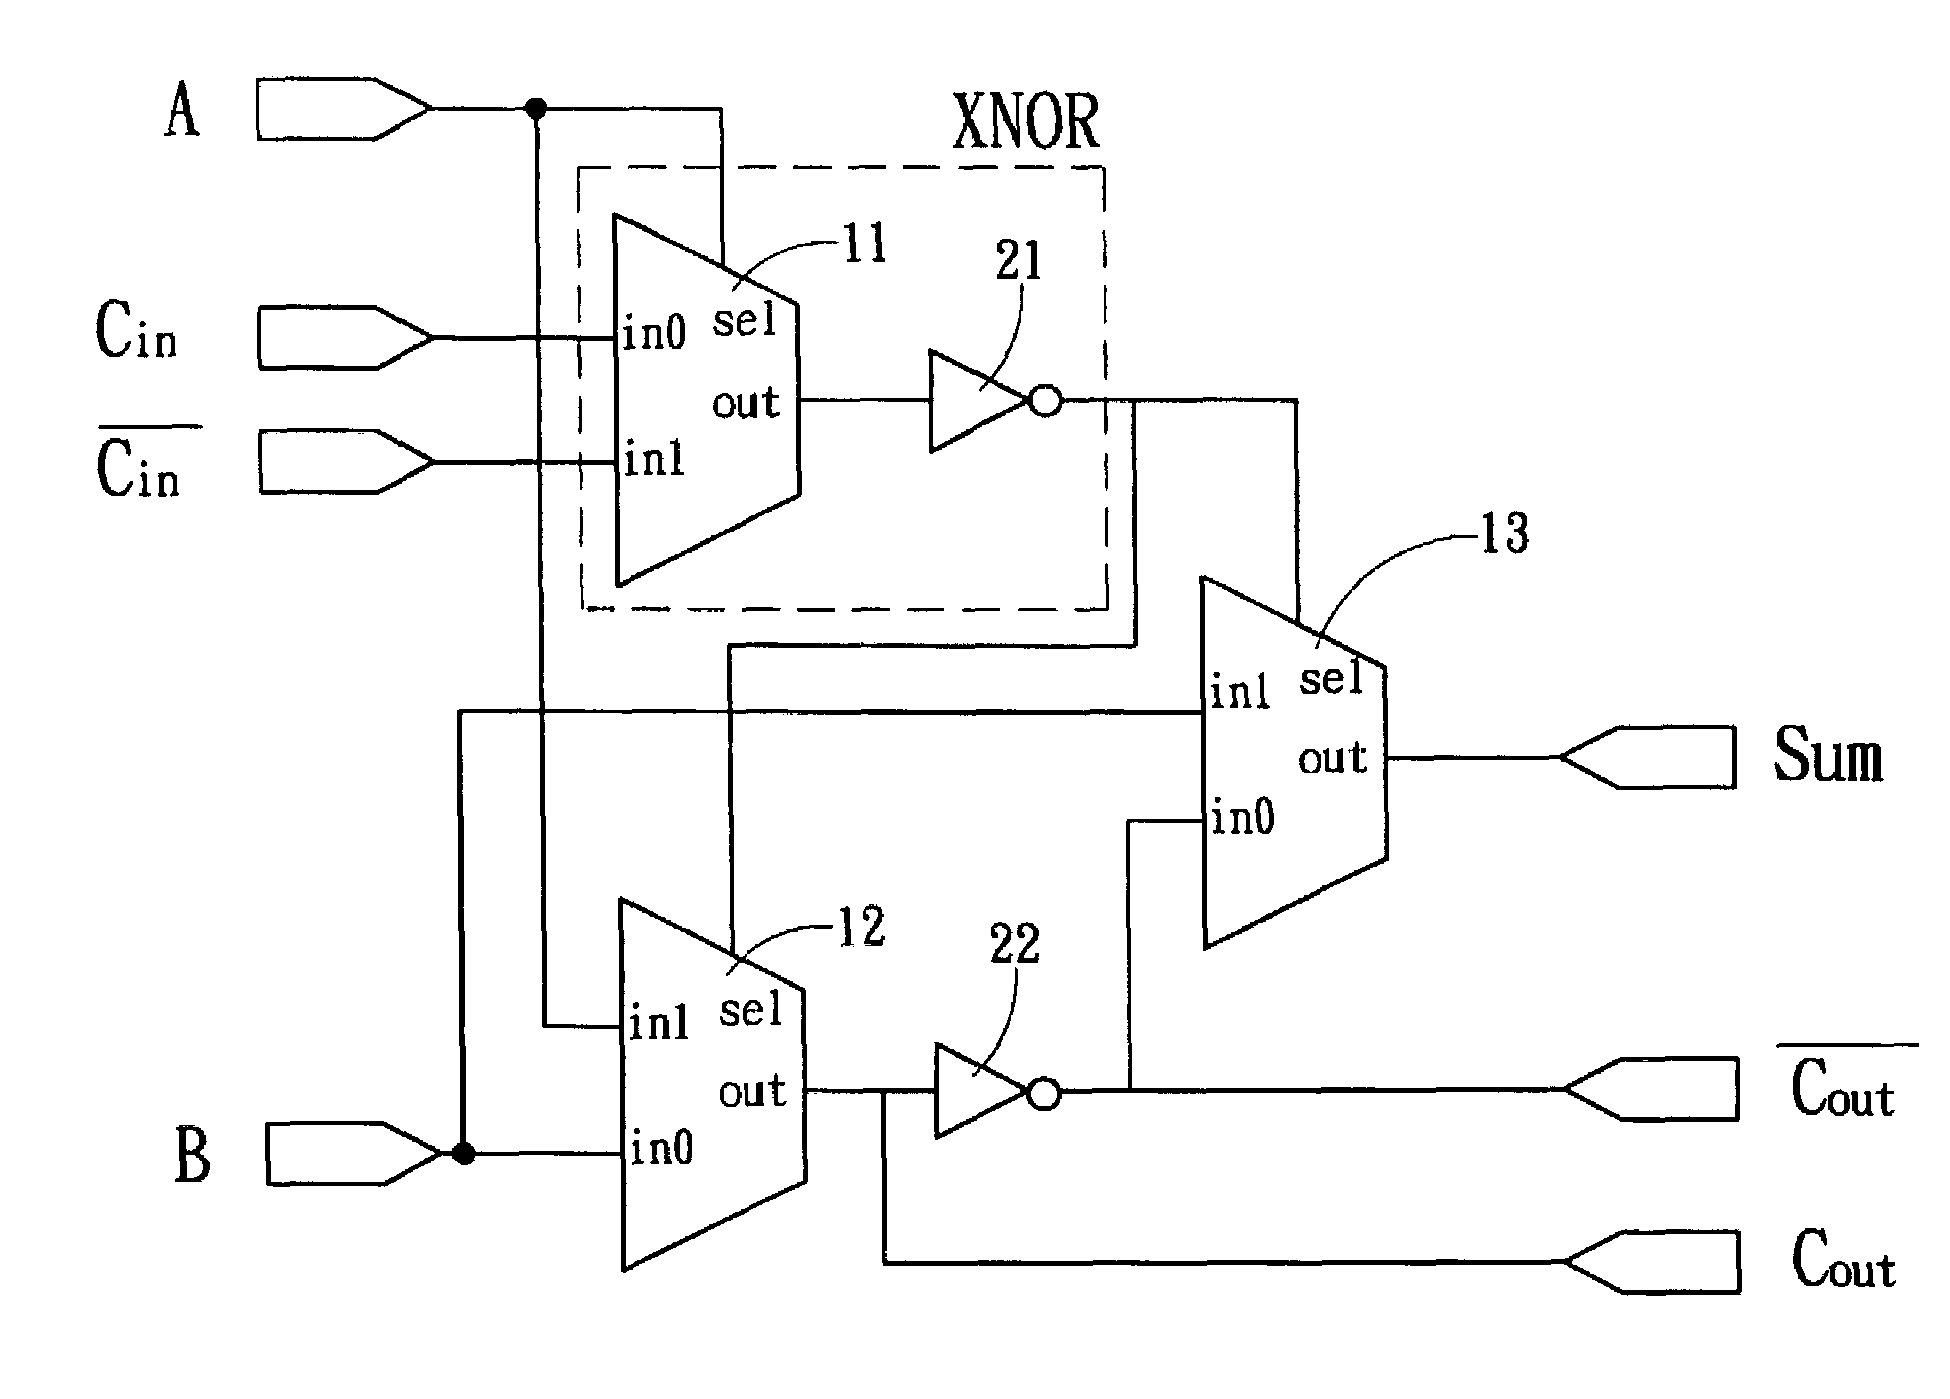 block diagram composition of the full adder b top level